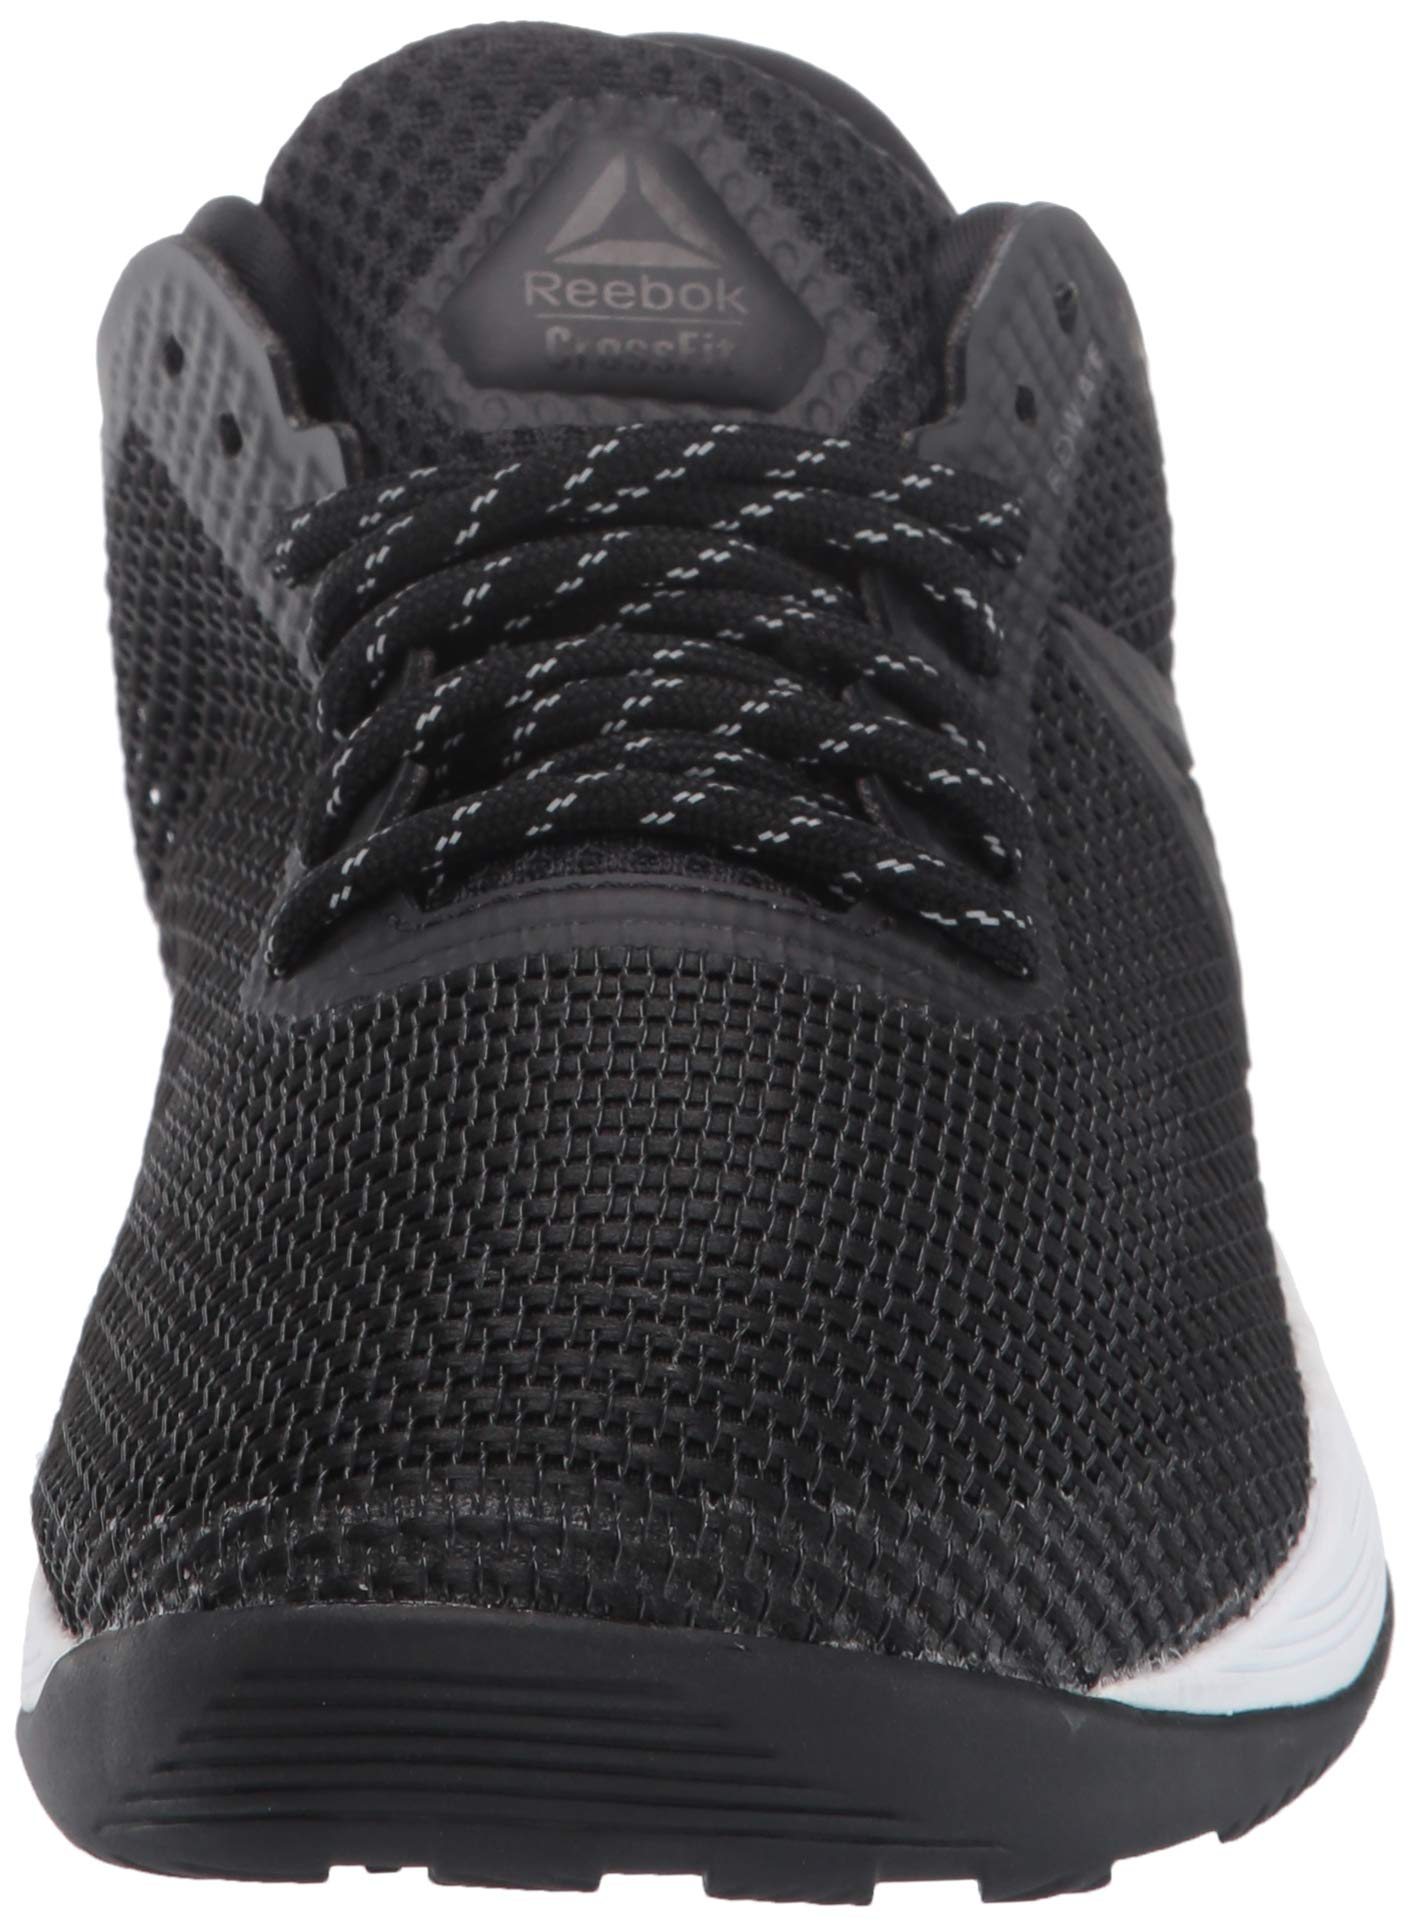 Reebok Women's CROSSFIT Nano 8.0 Flexweave Cross Trainer, Black/White, 5 M US by Reebok (Image #4)